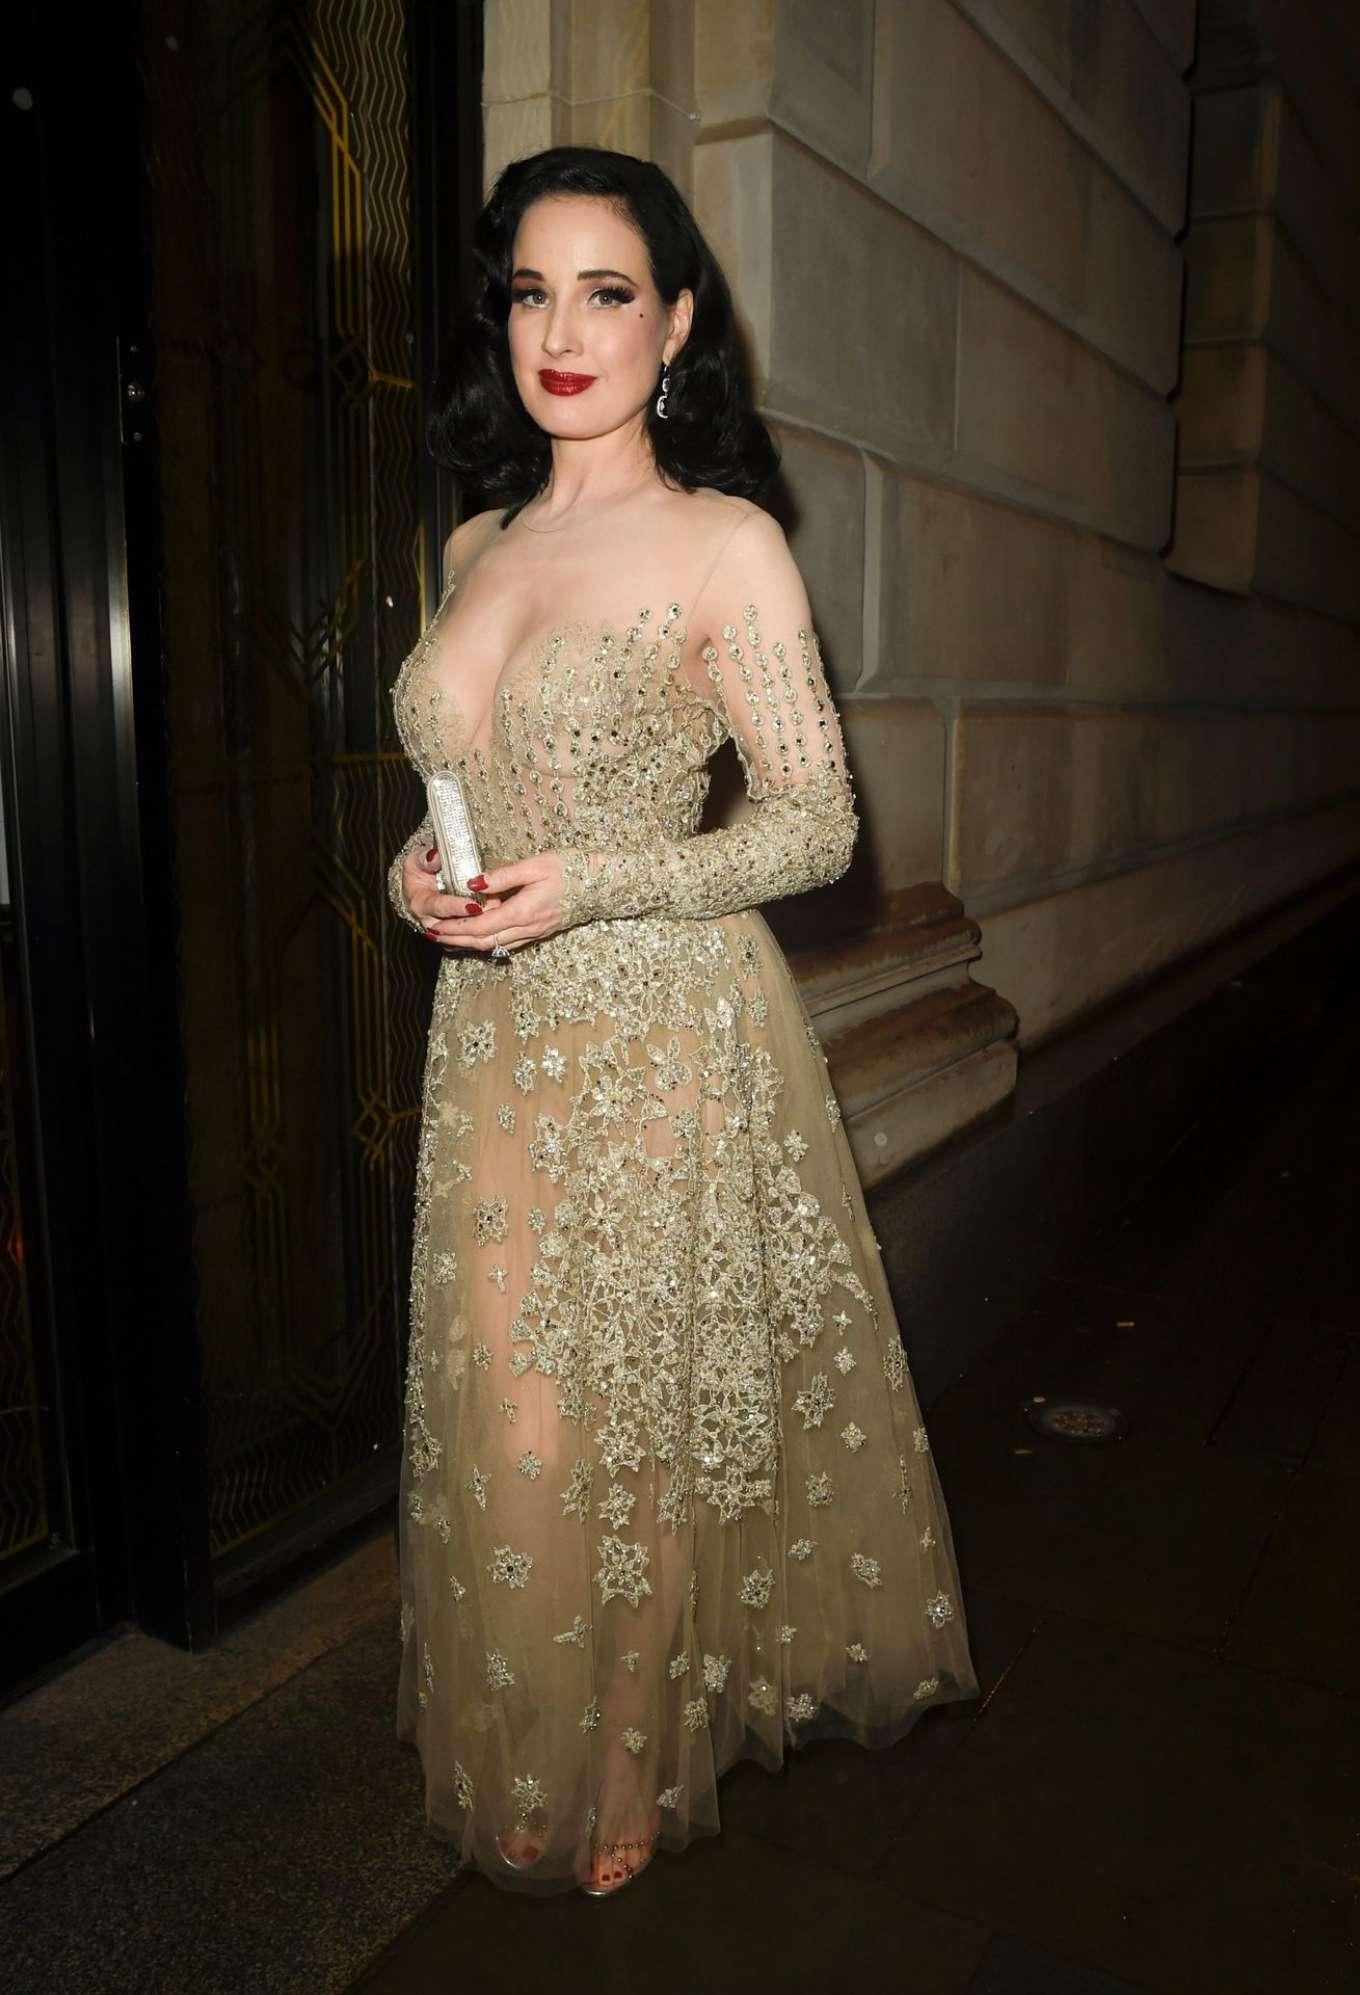 Dita Von Teese - Arriving back at her Hotel in Manchester